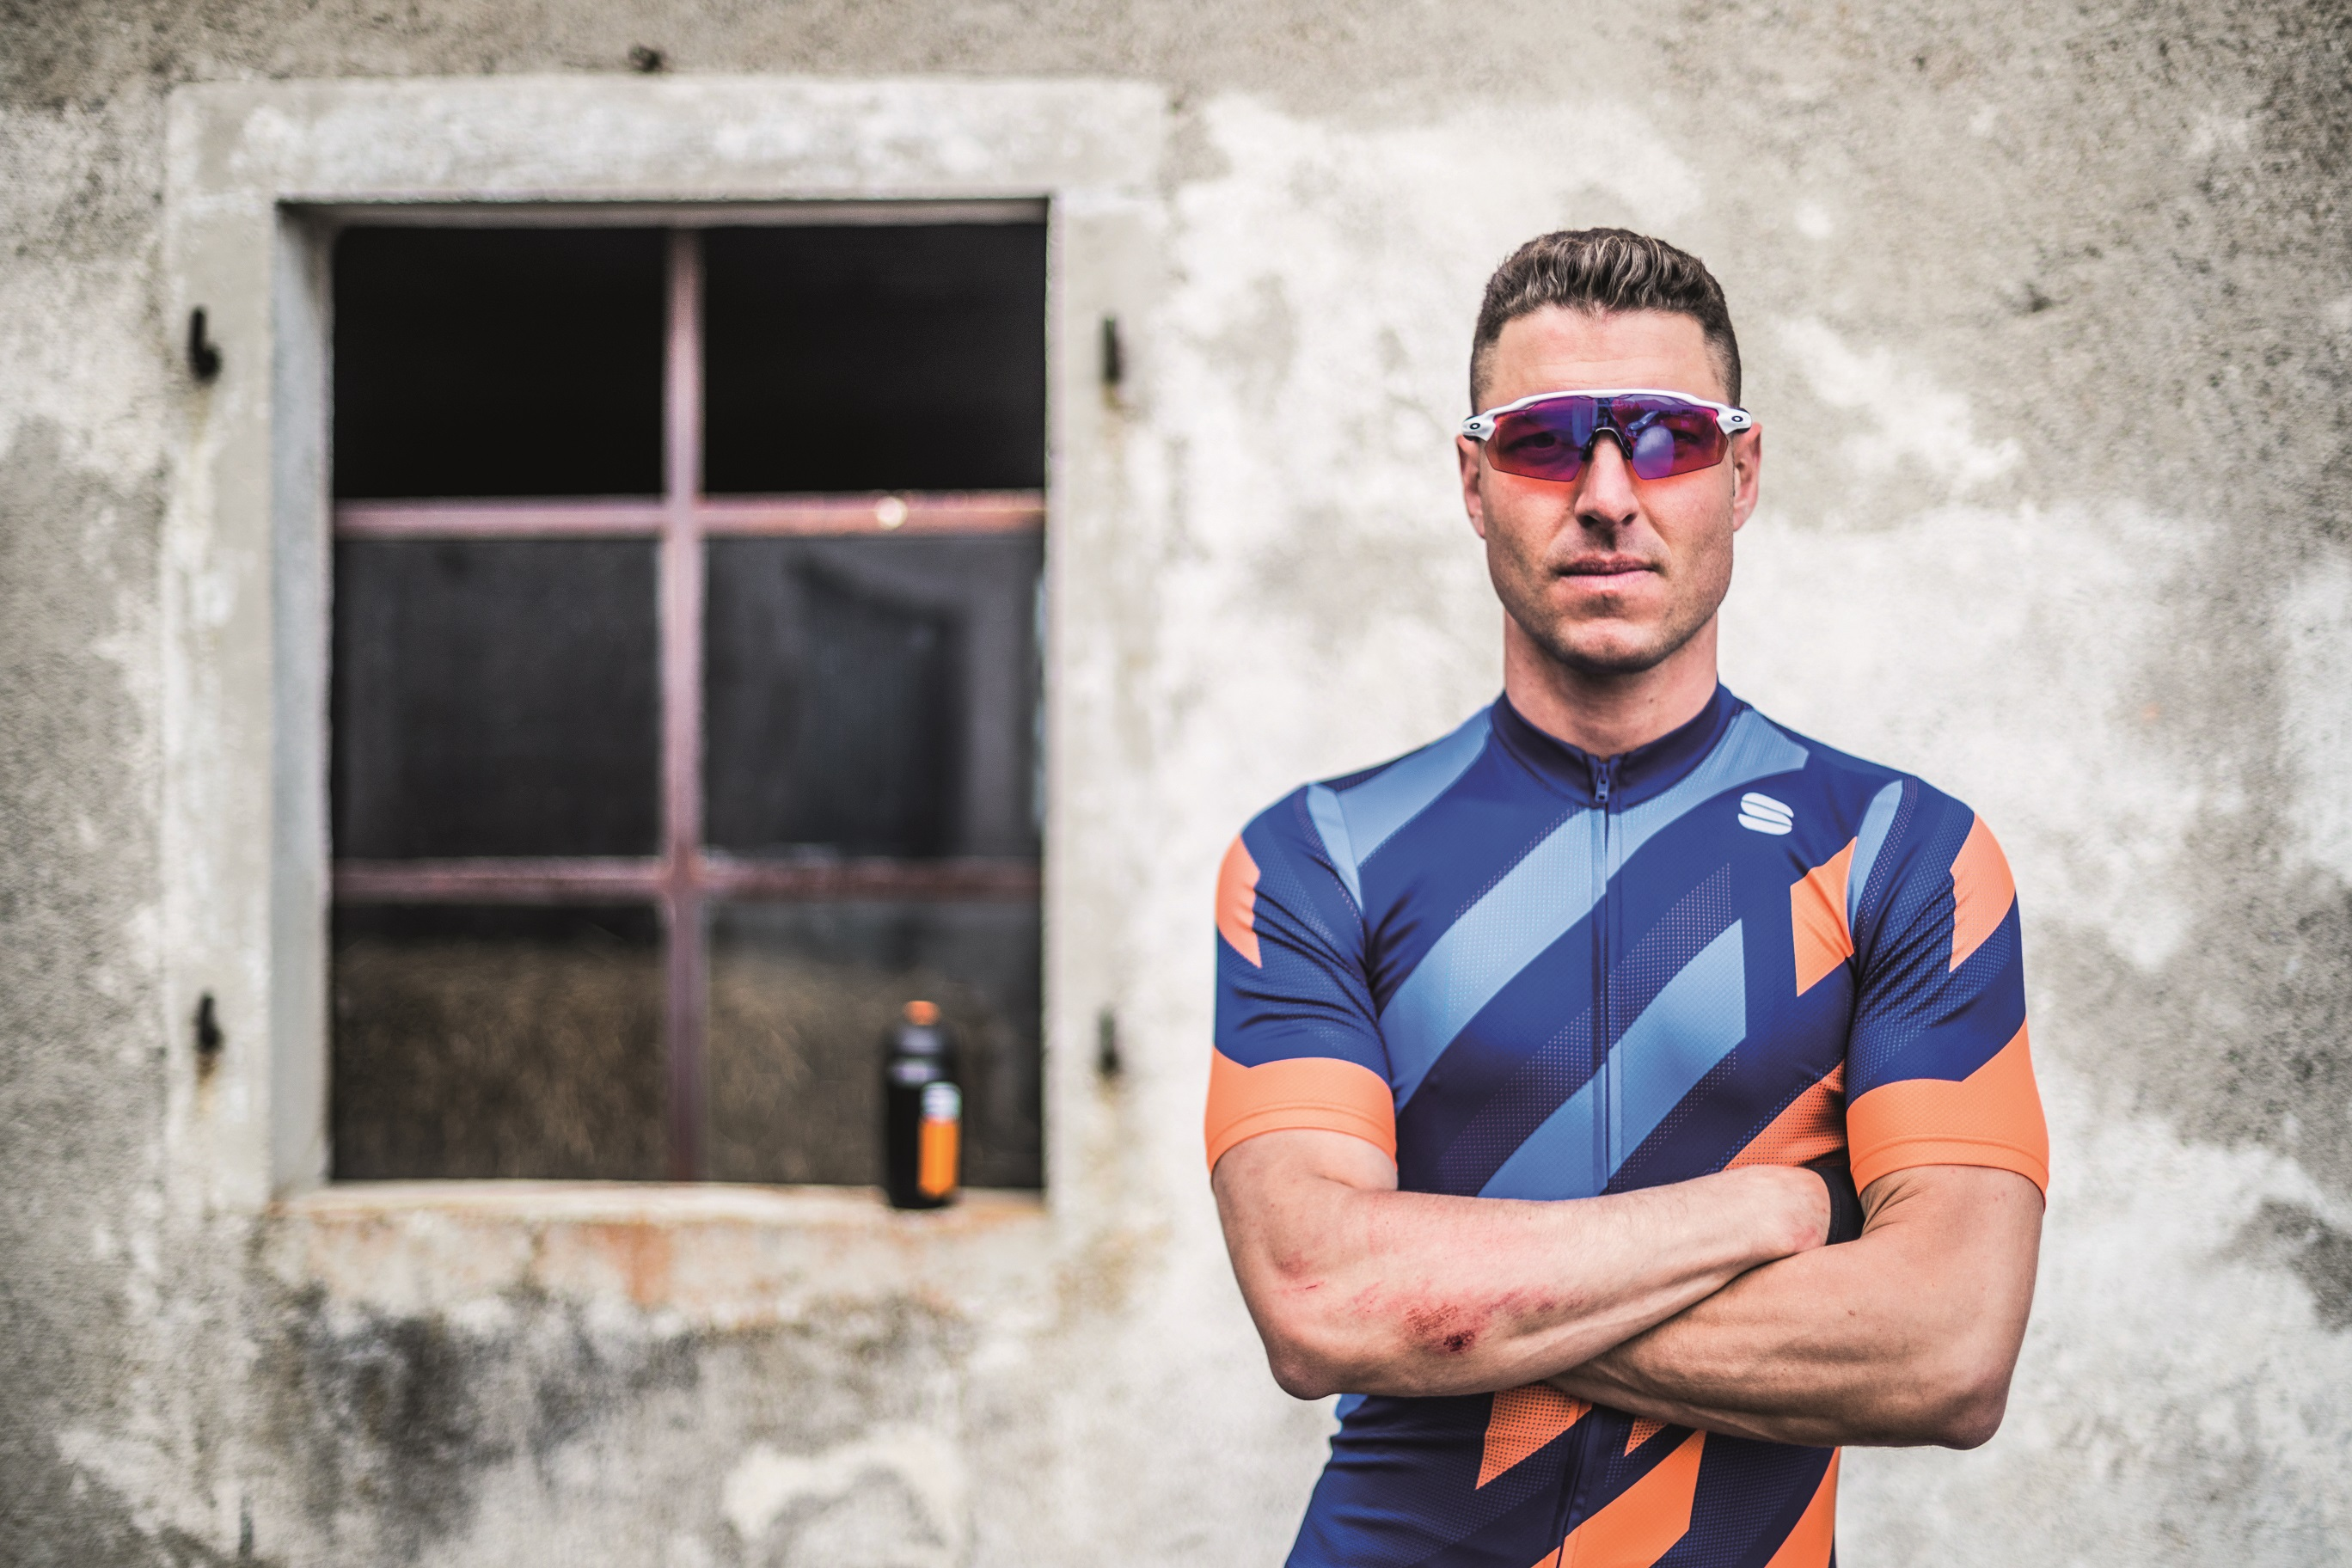 an italian rider wearing the volt jersey from sportful.